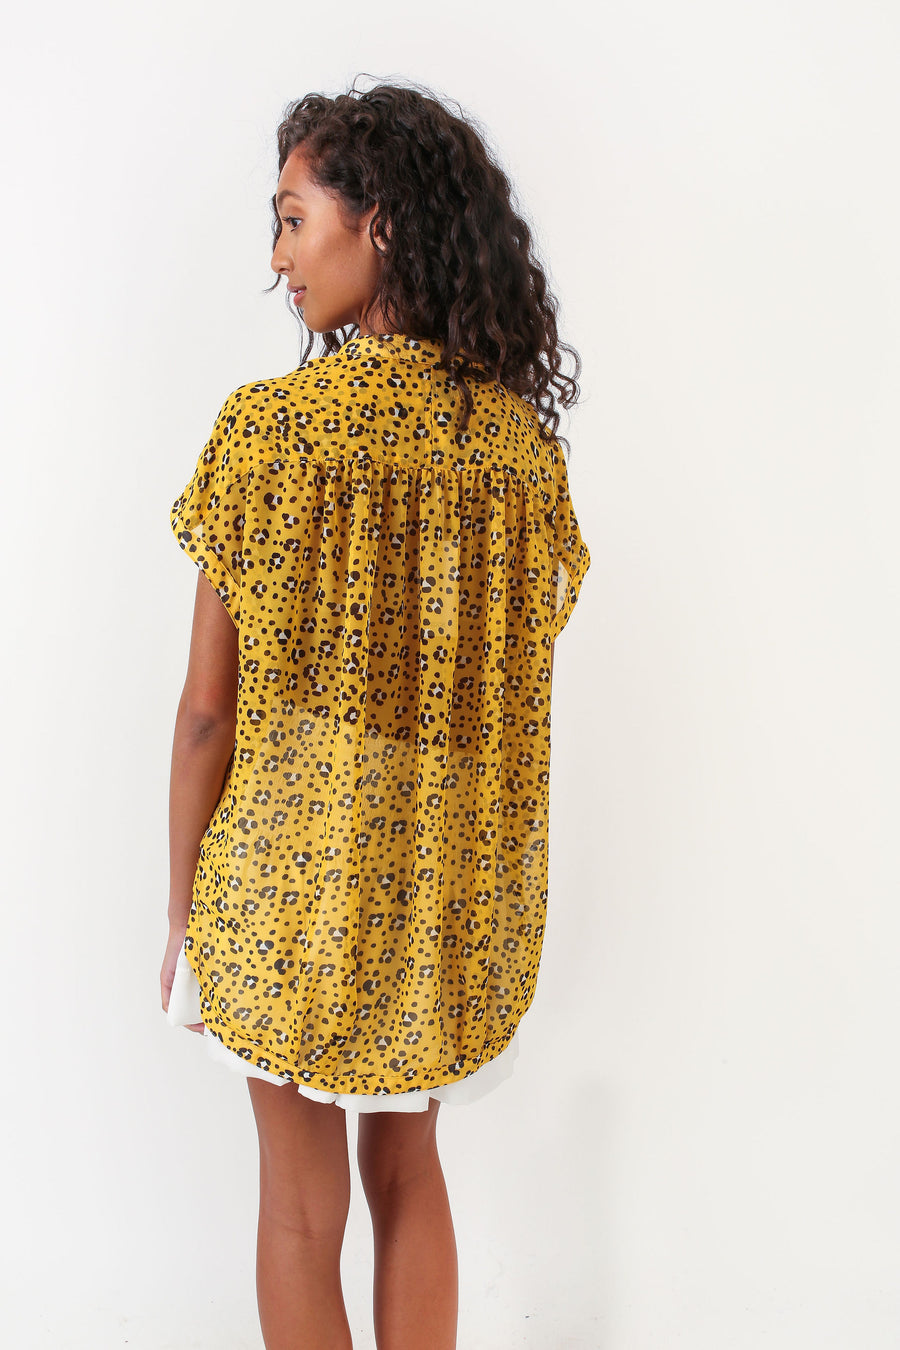 FERN TOP SUNFLOWER LEOPARD  *LIMITED*EDITION*